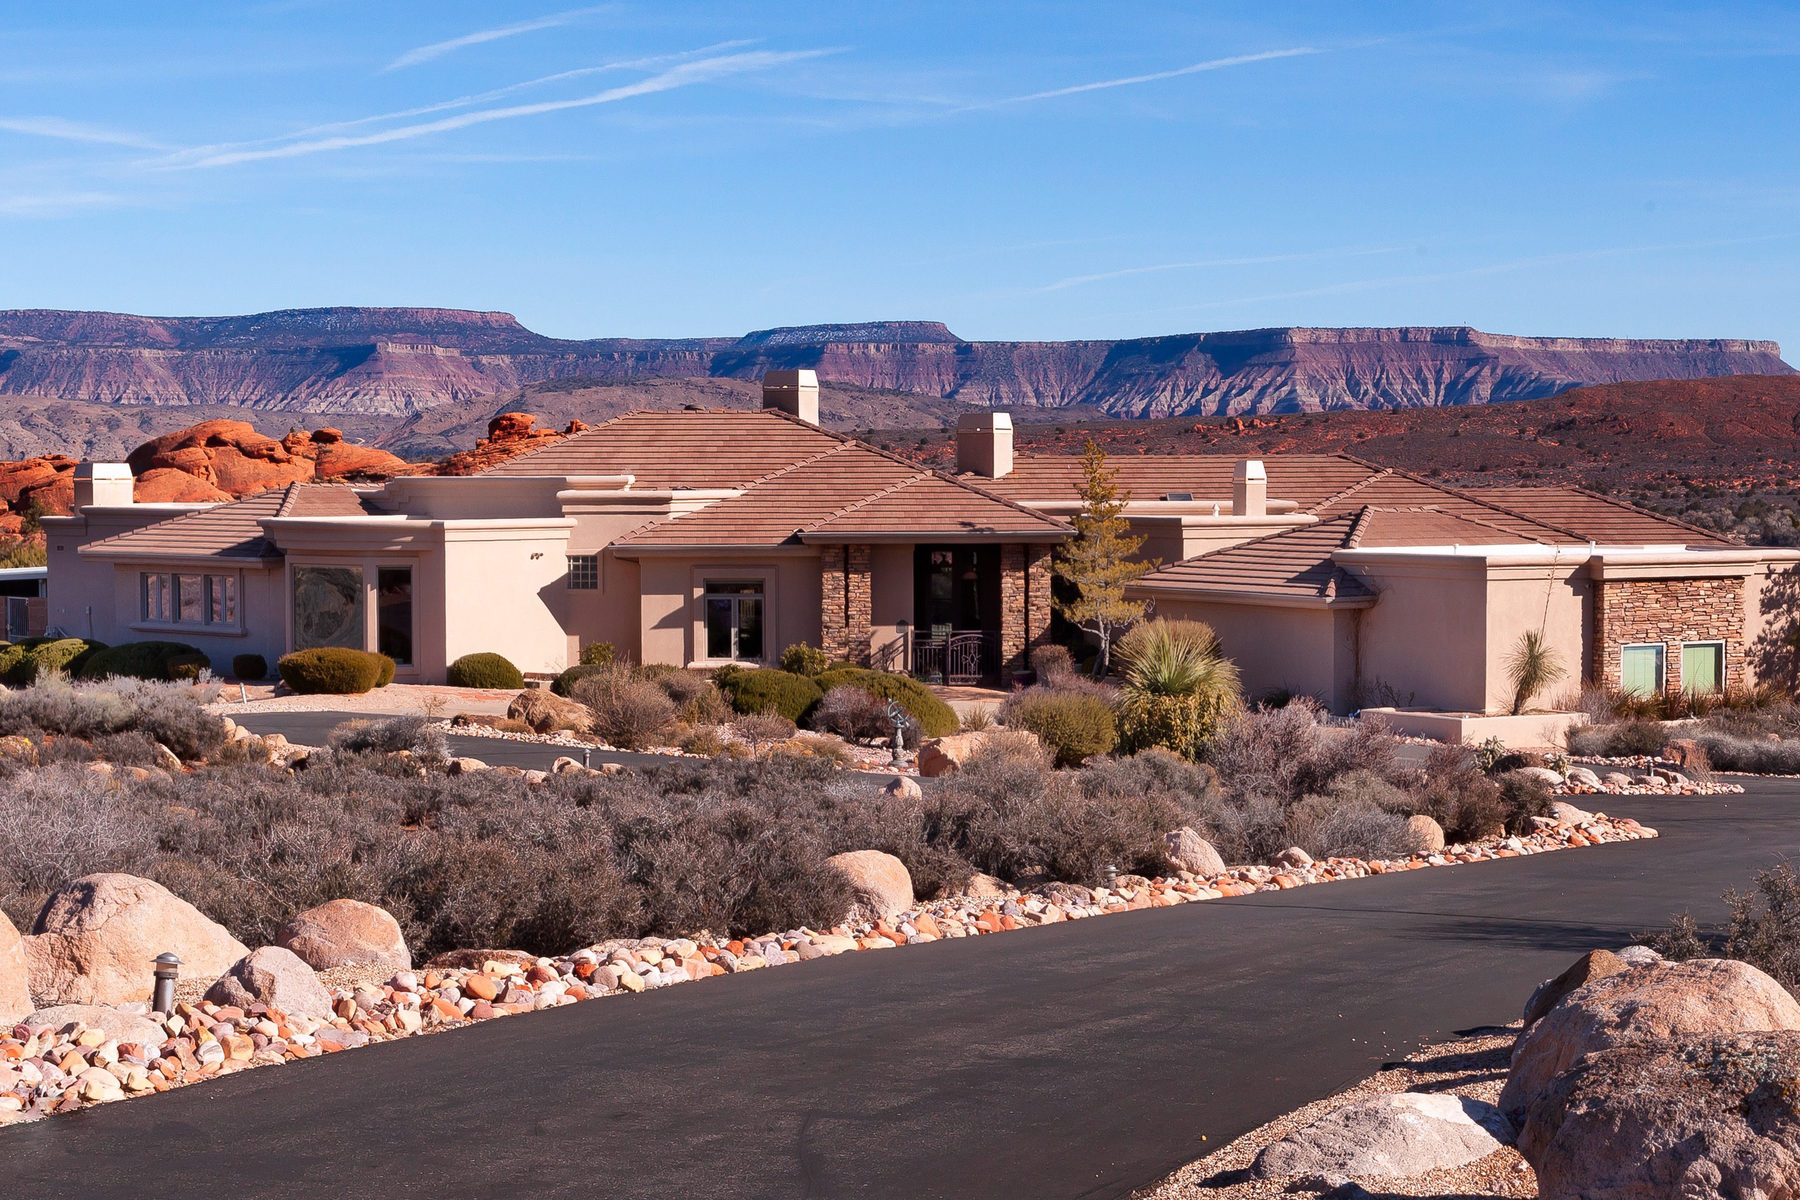 Single Family Home for Sale at Open Vista's and Tranquility 988 N Bonanza Leeds, Utah, 84746 United States